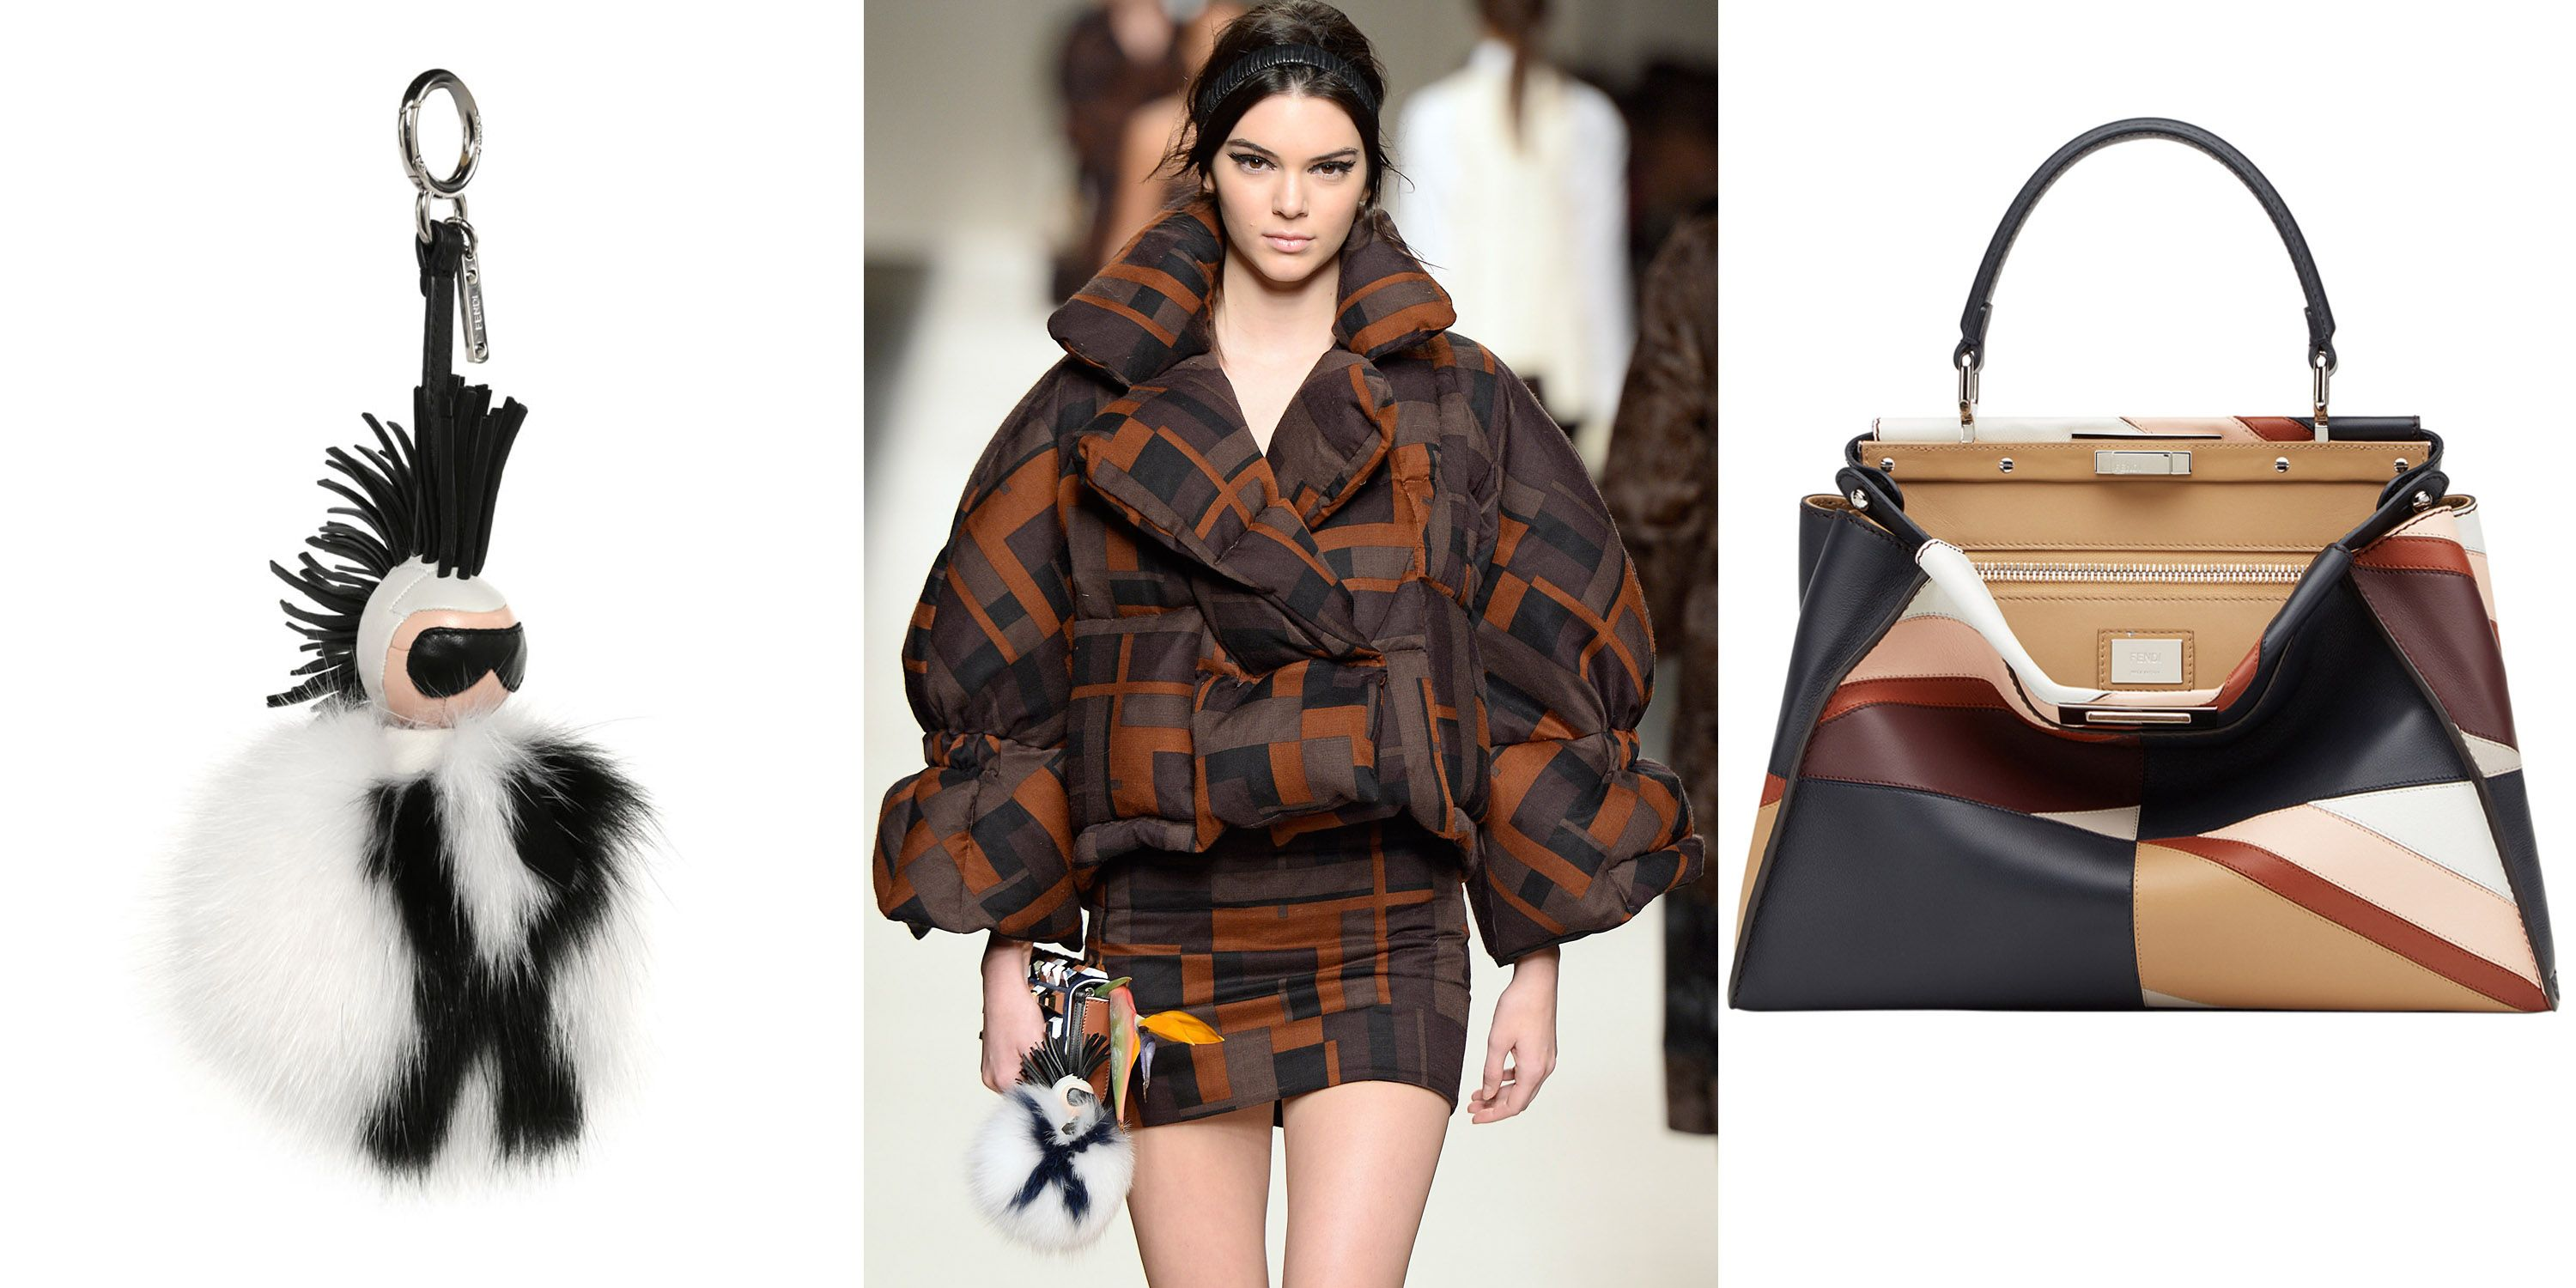 "<p>Karl Lagerfeld's legendary ingenuity has put Fendi's accessories among the most covetable season after season. Quirky fur add-ons and geometric bags were just a sampling of our favorites for fall. </p><p><i>Fendi Karlito keychain, $1,450, </i><a href=""https://shop.harpersbazaar.com/designers/fendi/karlito-fur-keychain/""><i>shopBAZAAR.com</i></a><i>&#x3B; Fendi bag, $5,300, </i><a href=""https://shop.harpersbazaar.com/designers/fendi/peekboo-medium-patchwork-bag/""><i>shopBAZAAR.com</i></a></p>"